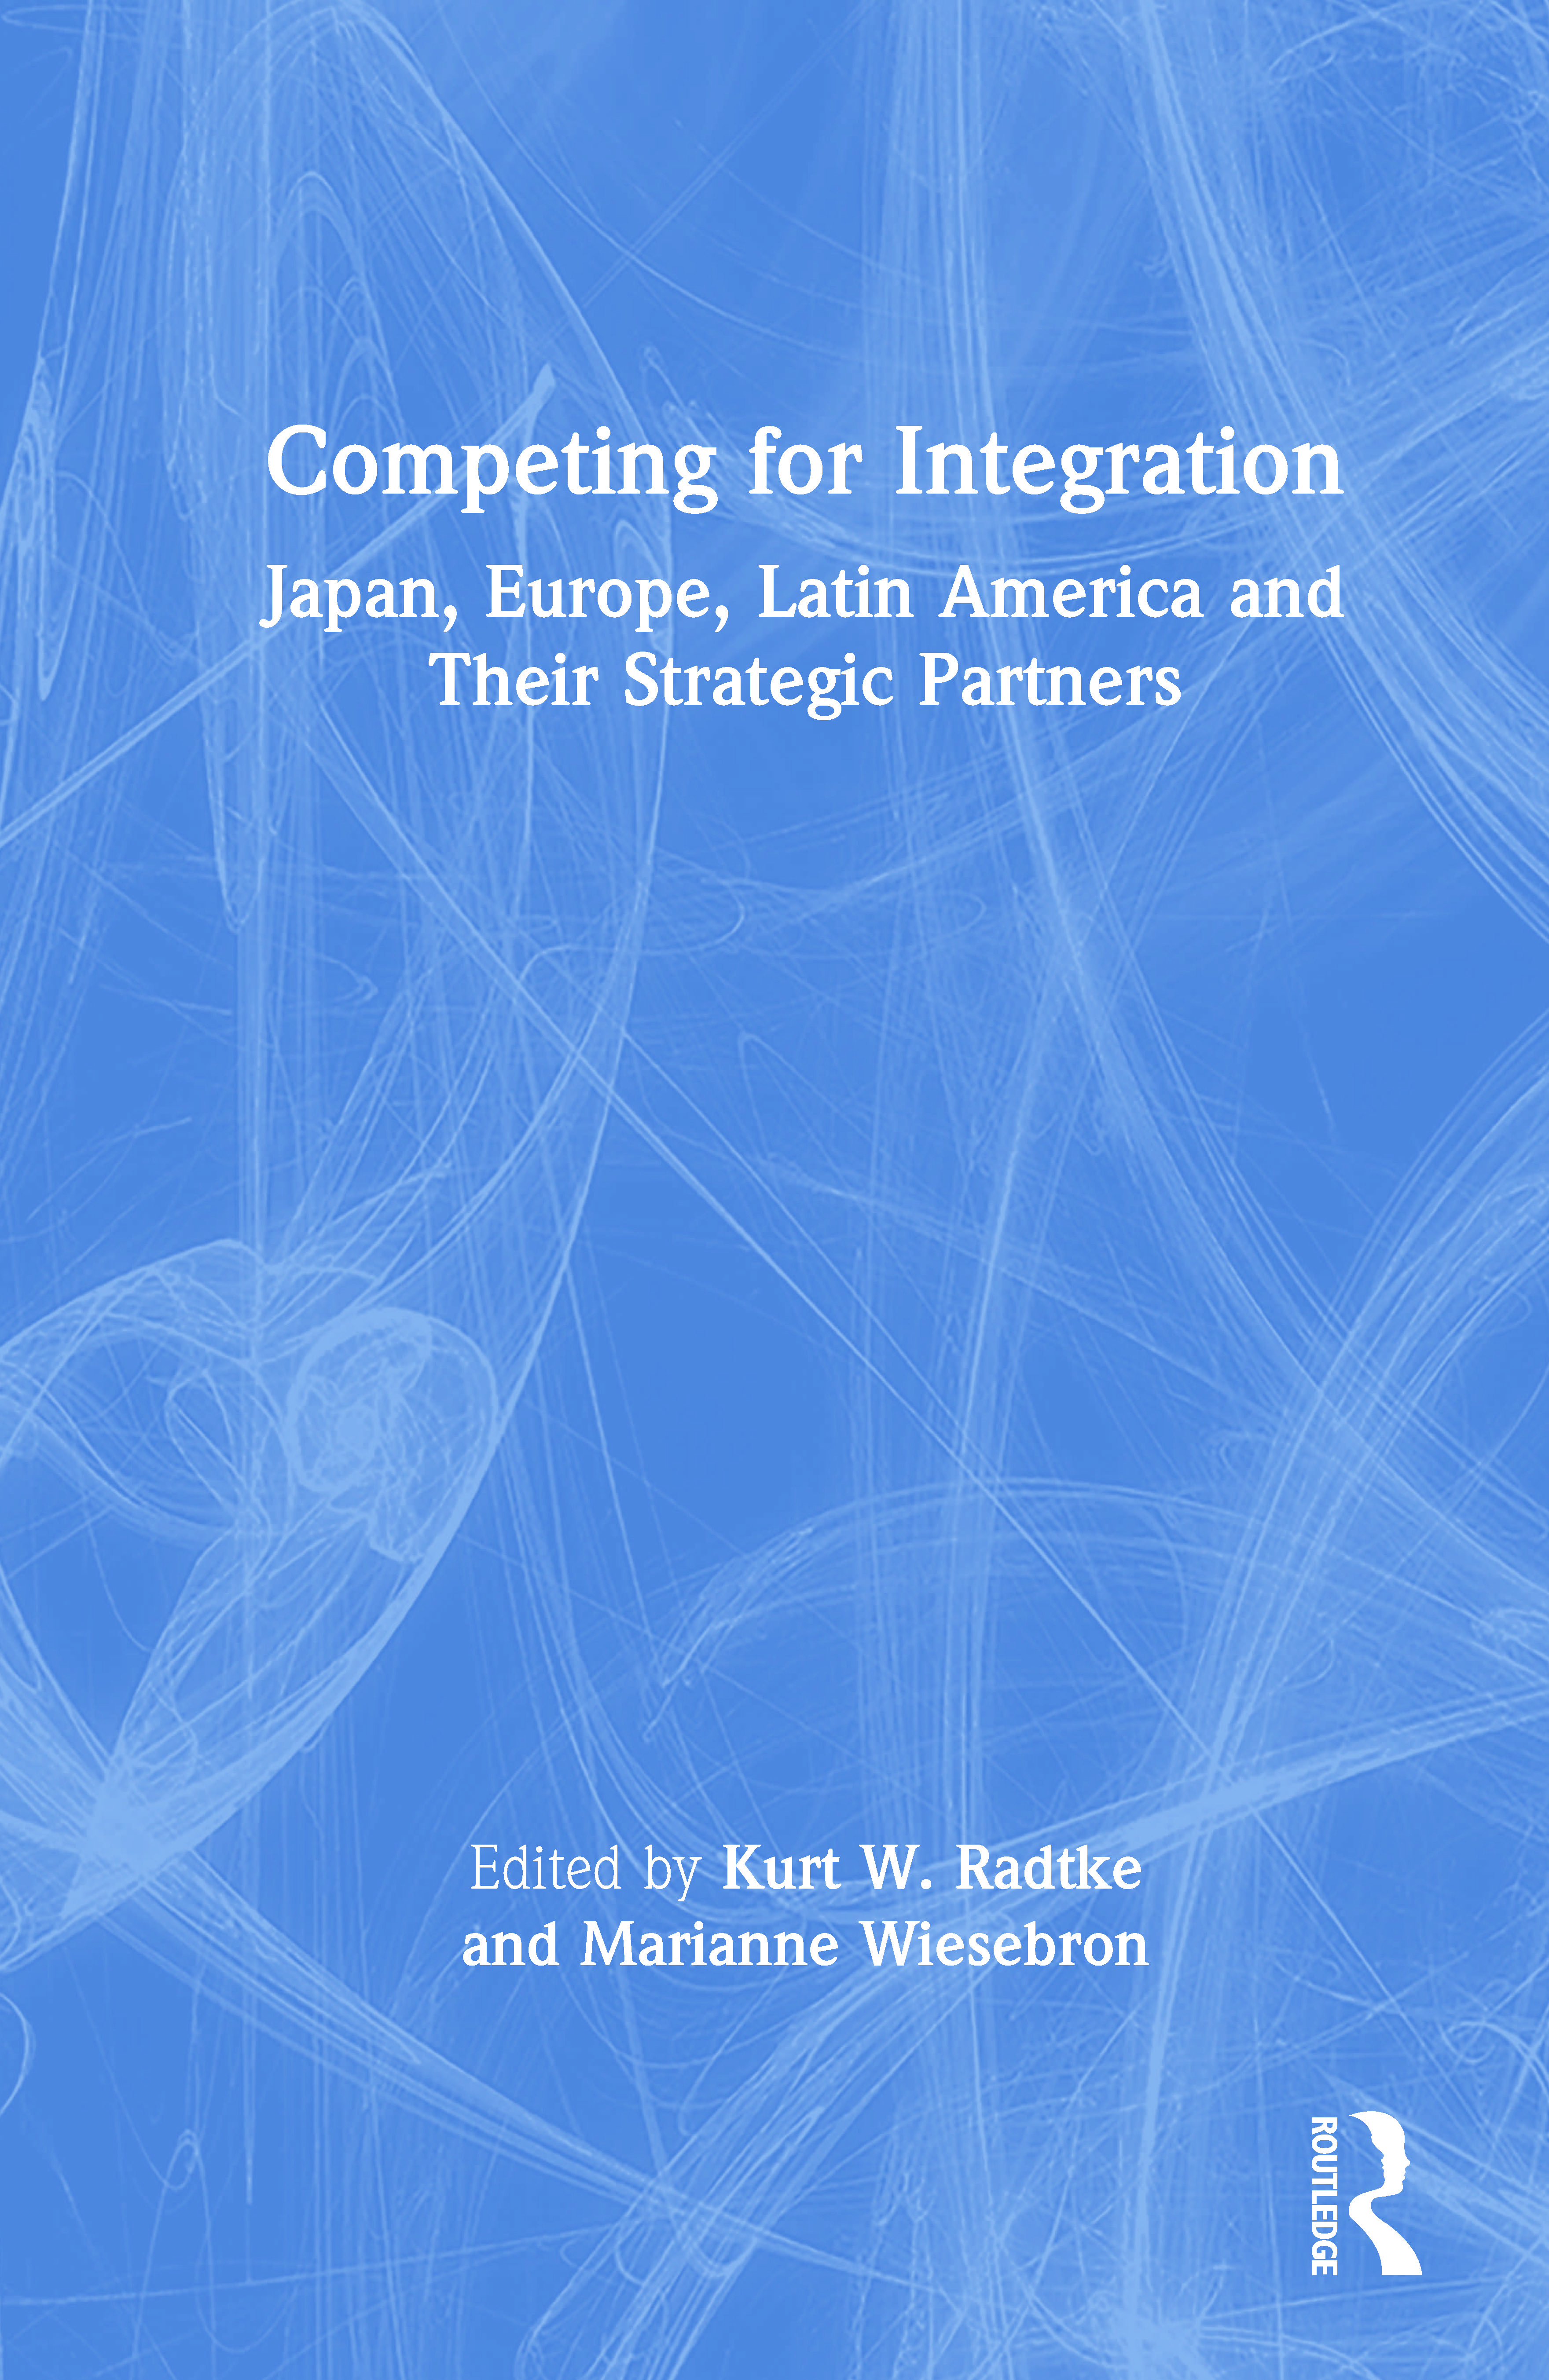 Competing for Integration: Japan, Europe, Latin America and Their Strategic Partners: Japan, Europe, Latin America and Their Strategic Partners, 1st Edition (Hardback) book cover